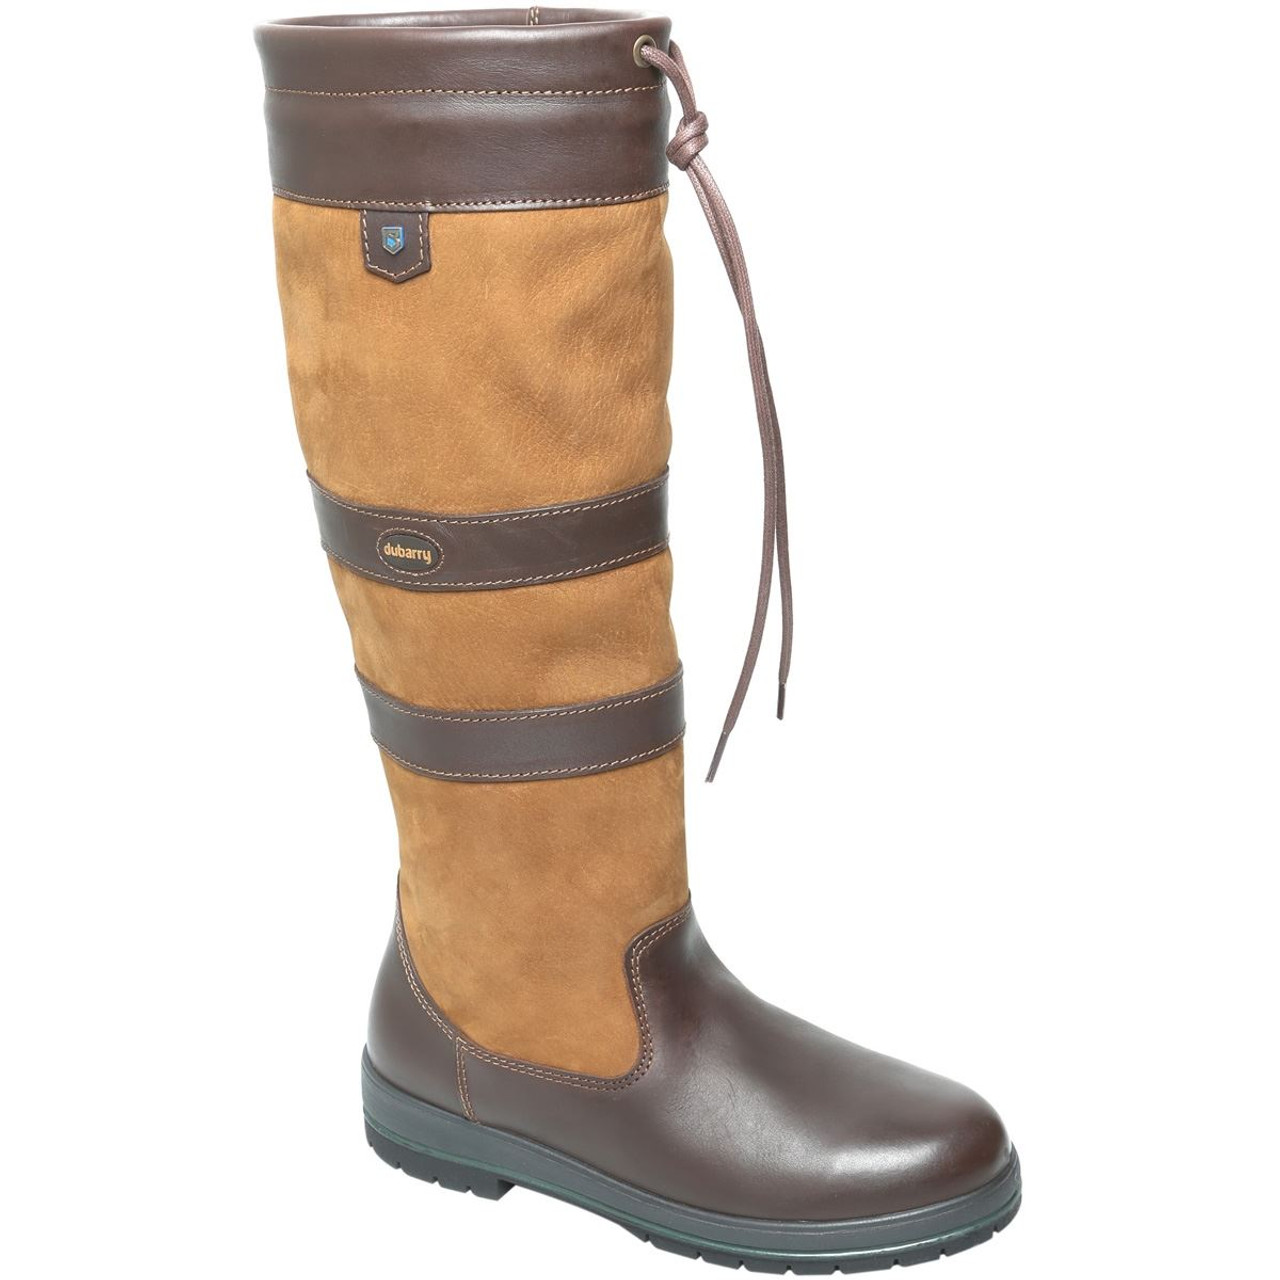 Dubarry Unisex Galway Boots